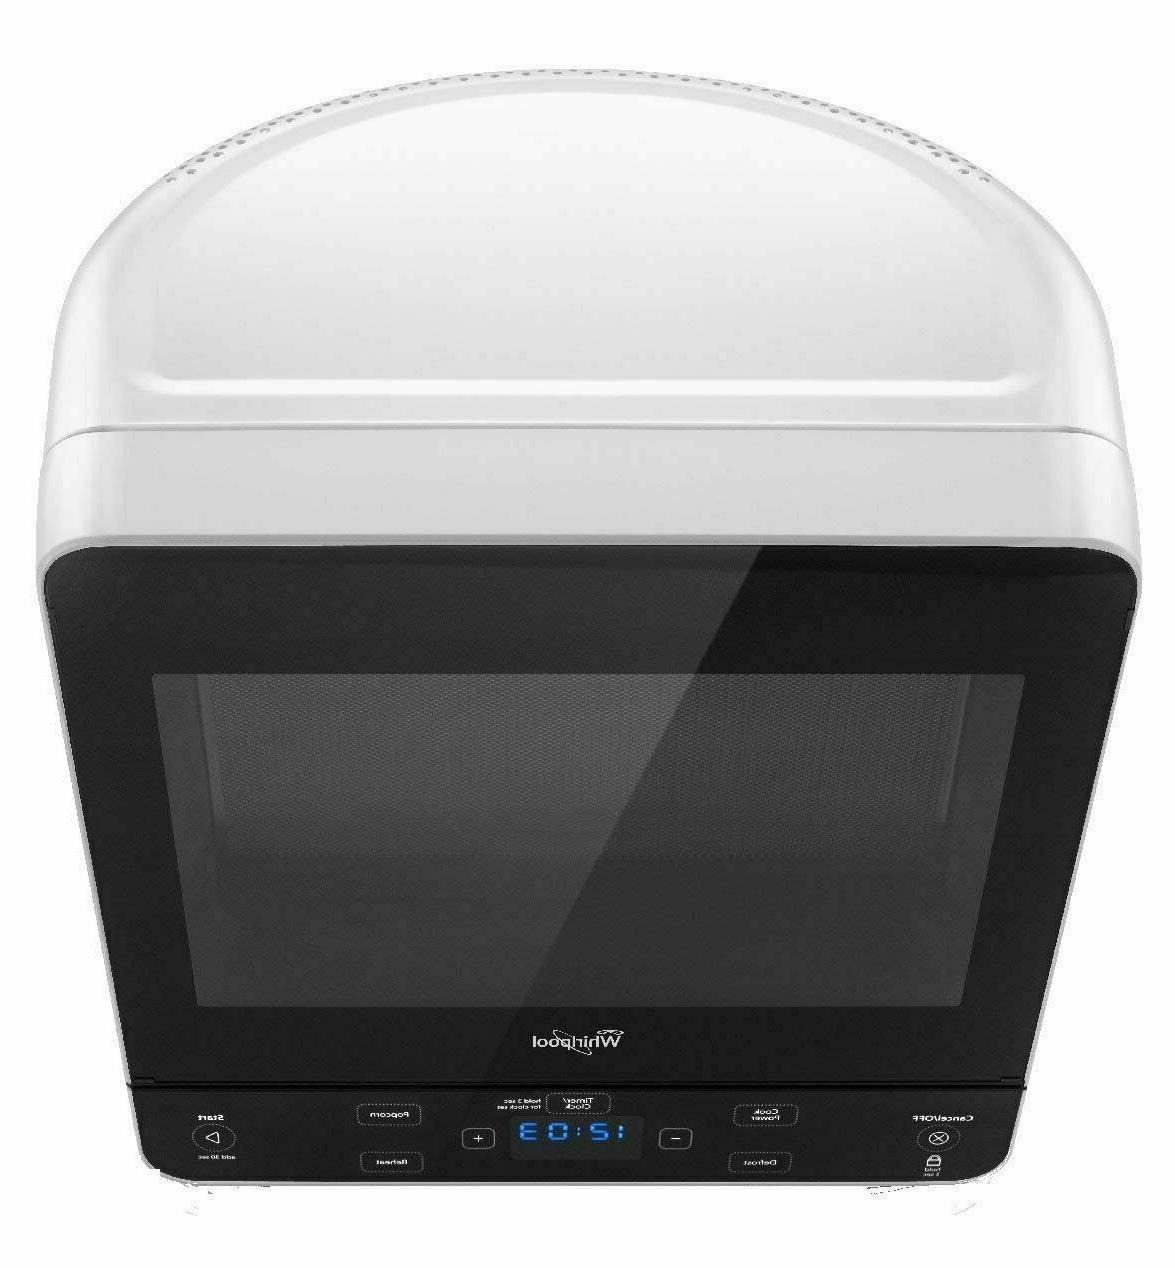 Microwave Oven Stainless Steel Black 0.5 Cu.Ft 750w